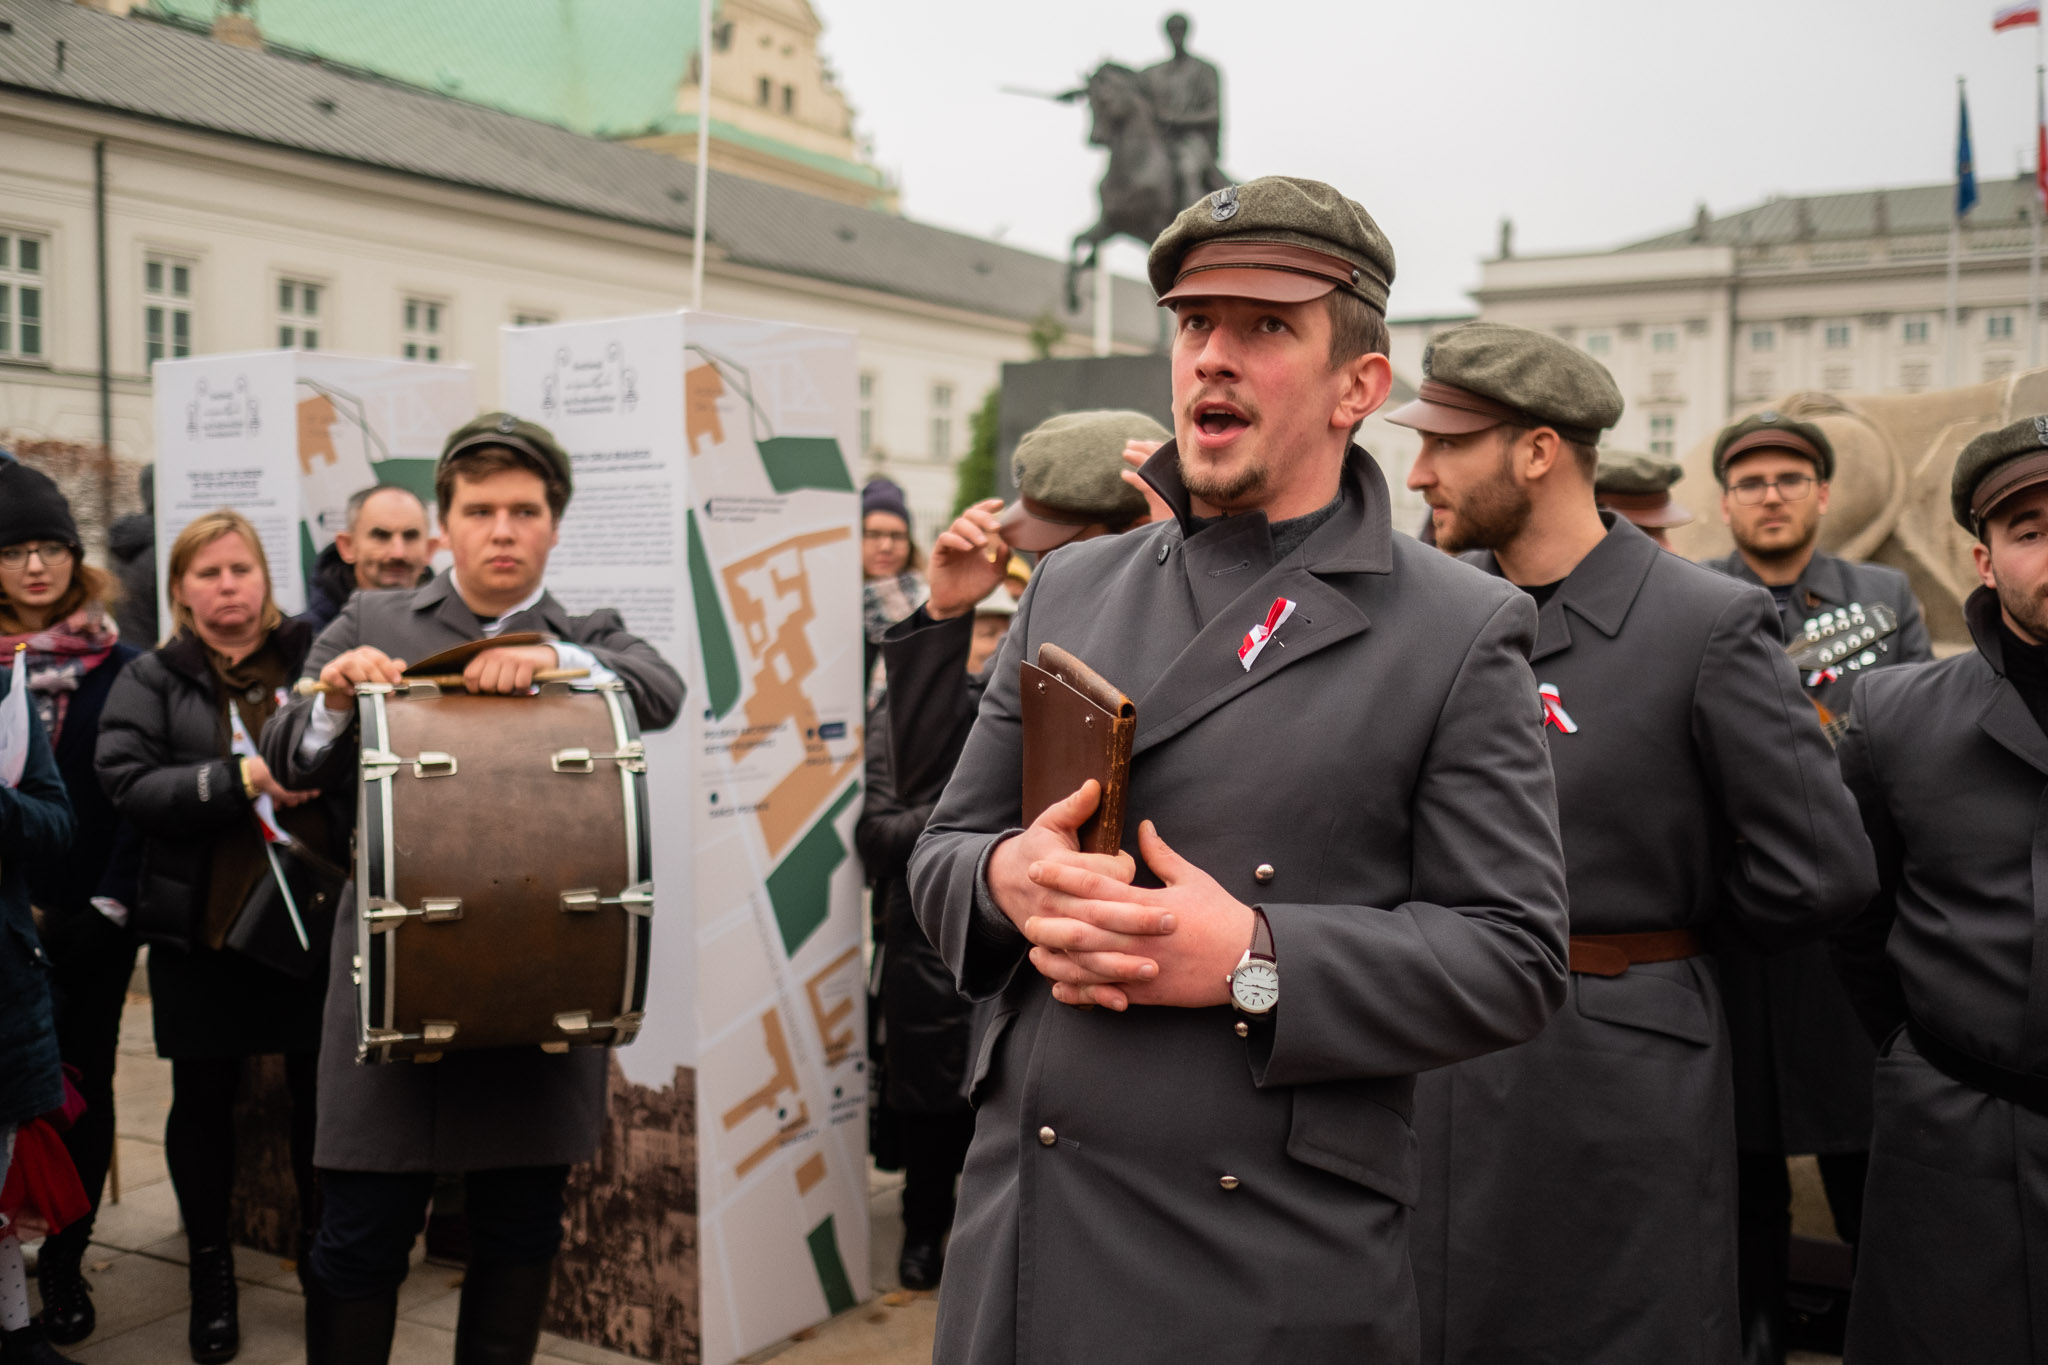 A group of musicians in identical stylised military uniforms during a performance in an urban space